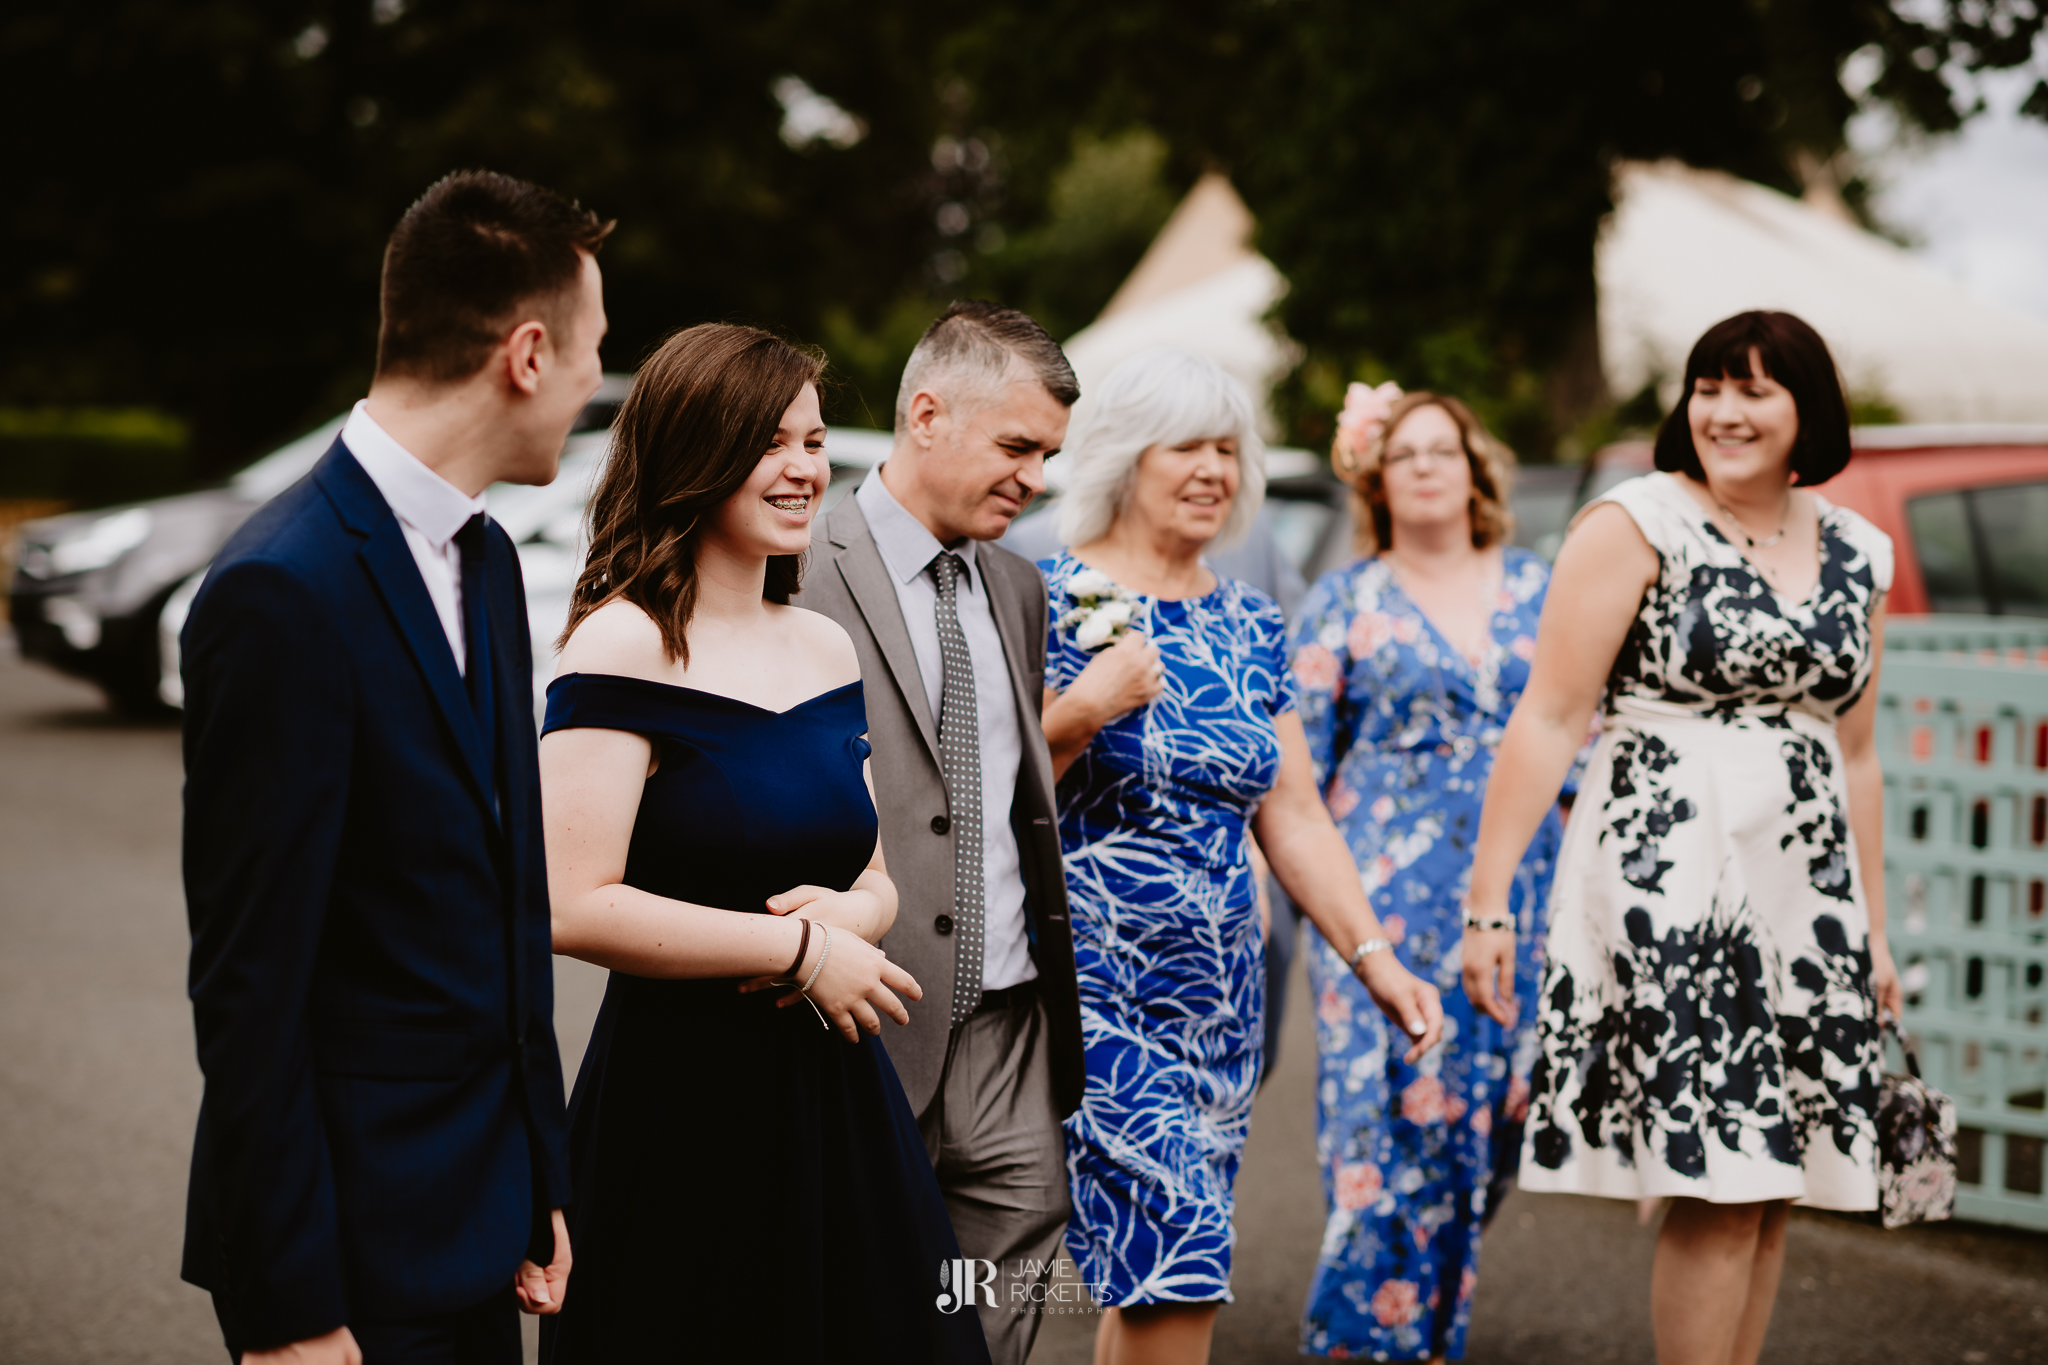 Wroxeter-Hotel-Wedding-Photography-In-Shropshire-By-Shropshire-Wedding-Photographer-Jamie-Ricketts-084.JPG